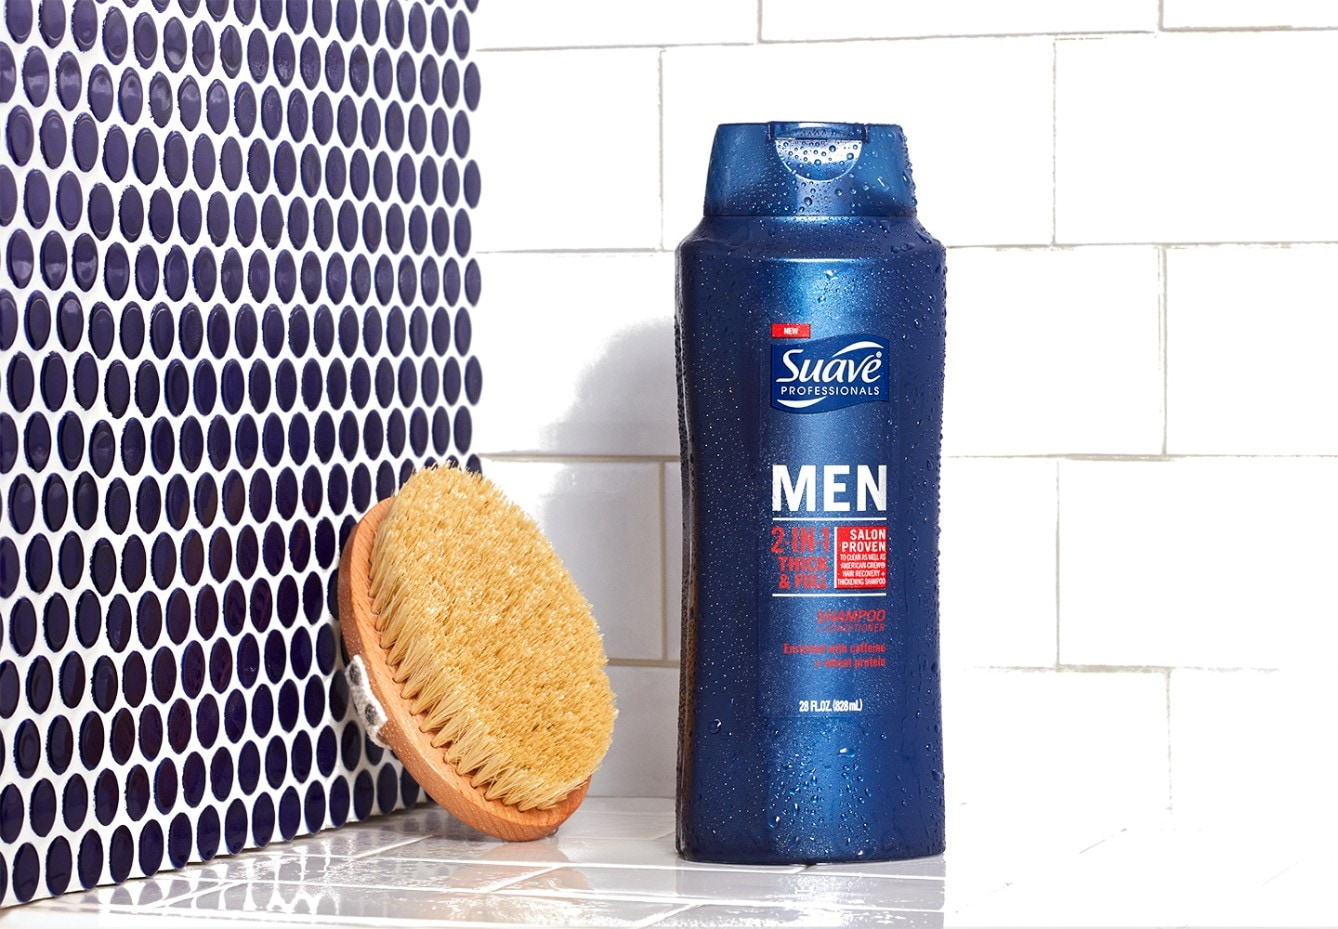 Bottle of Suave Men® 2-in-1 Thick & Full Shampoo and Conditioner in a shower next to a scrub brush